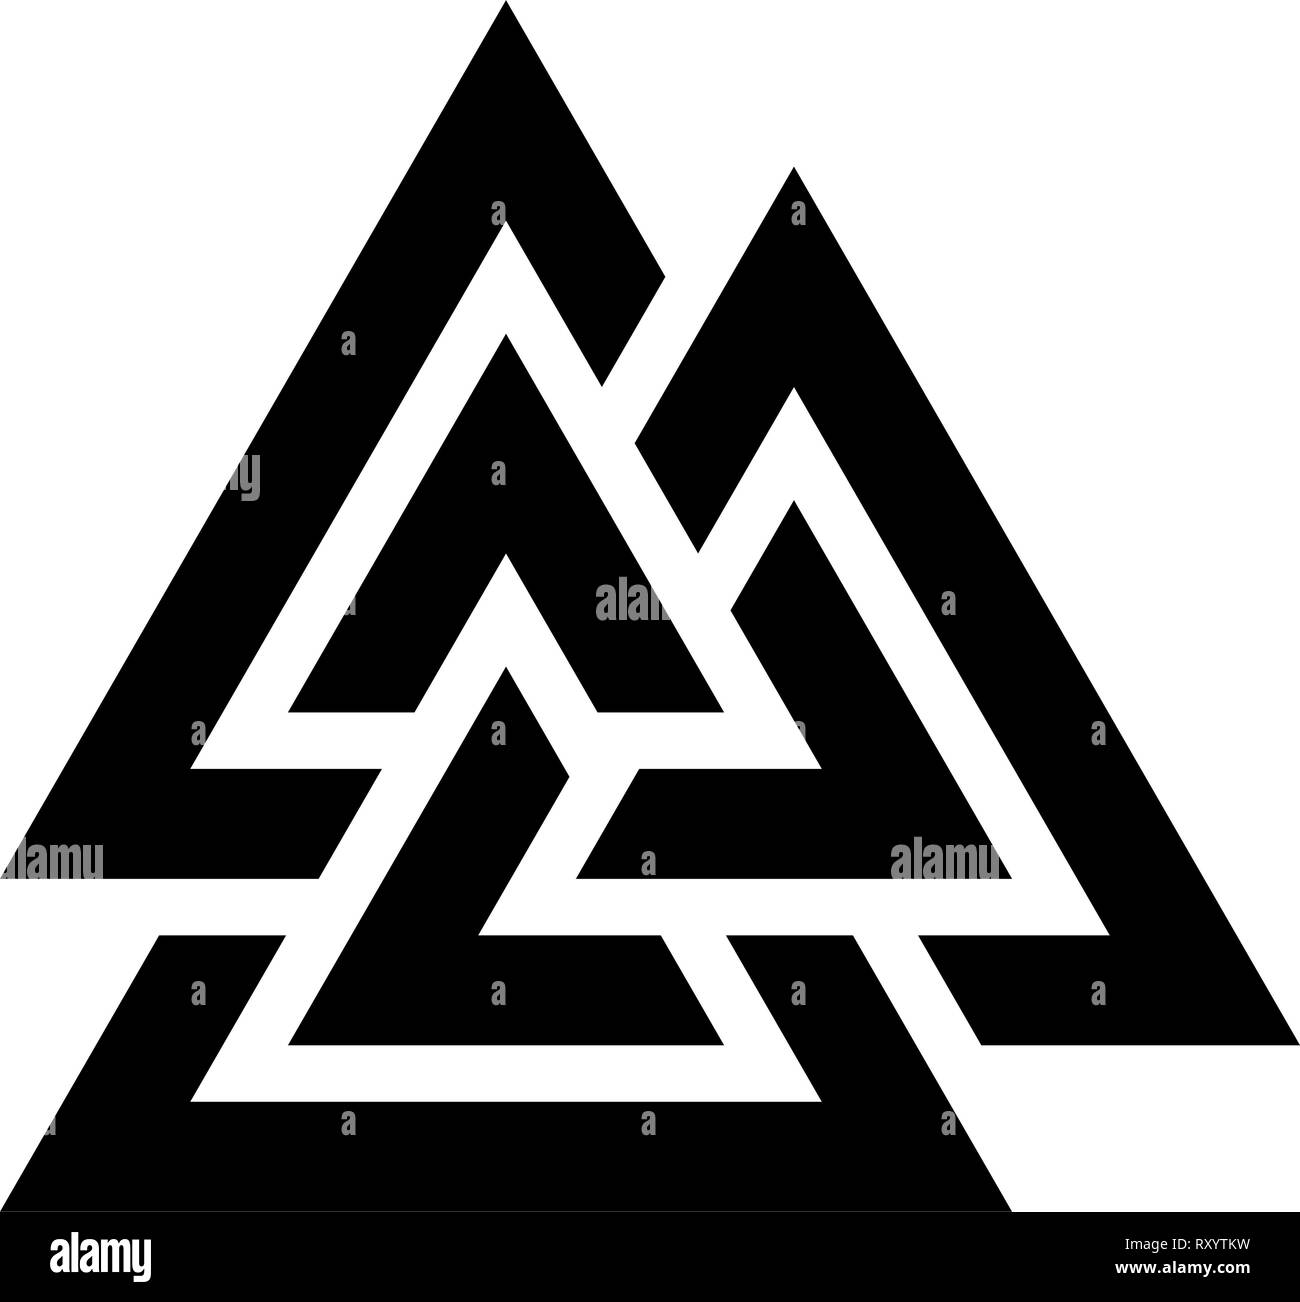 Valknut symbol icon black color vector illustration flat style simple image - Stock Image